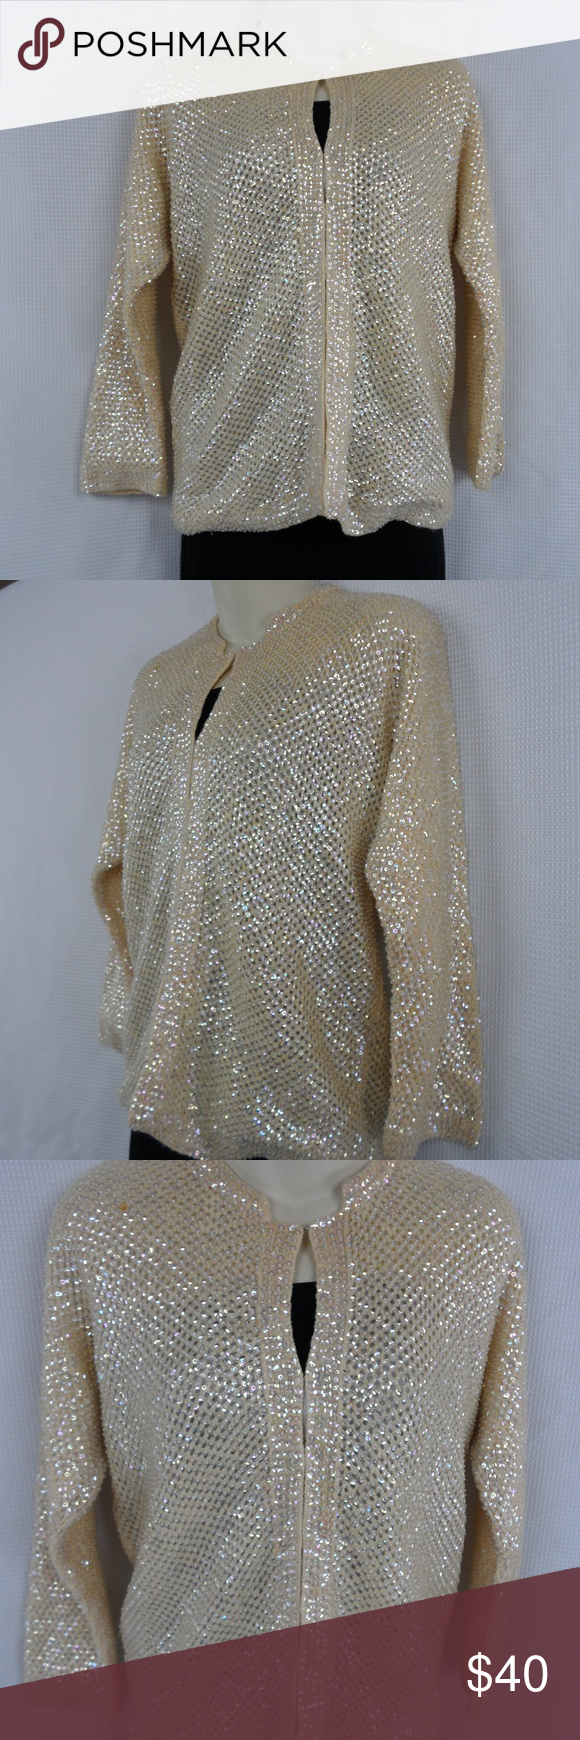 50s/60s Sequin Cardigan Sweater   Sequins, Ivory and Fall wedding ...